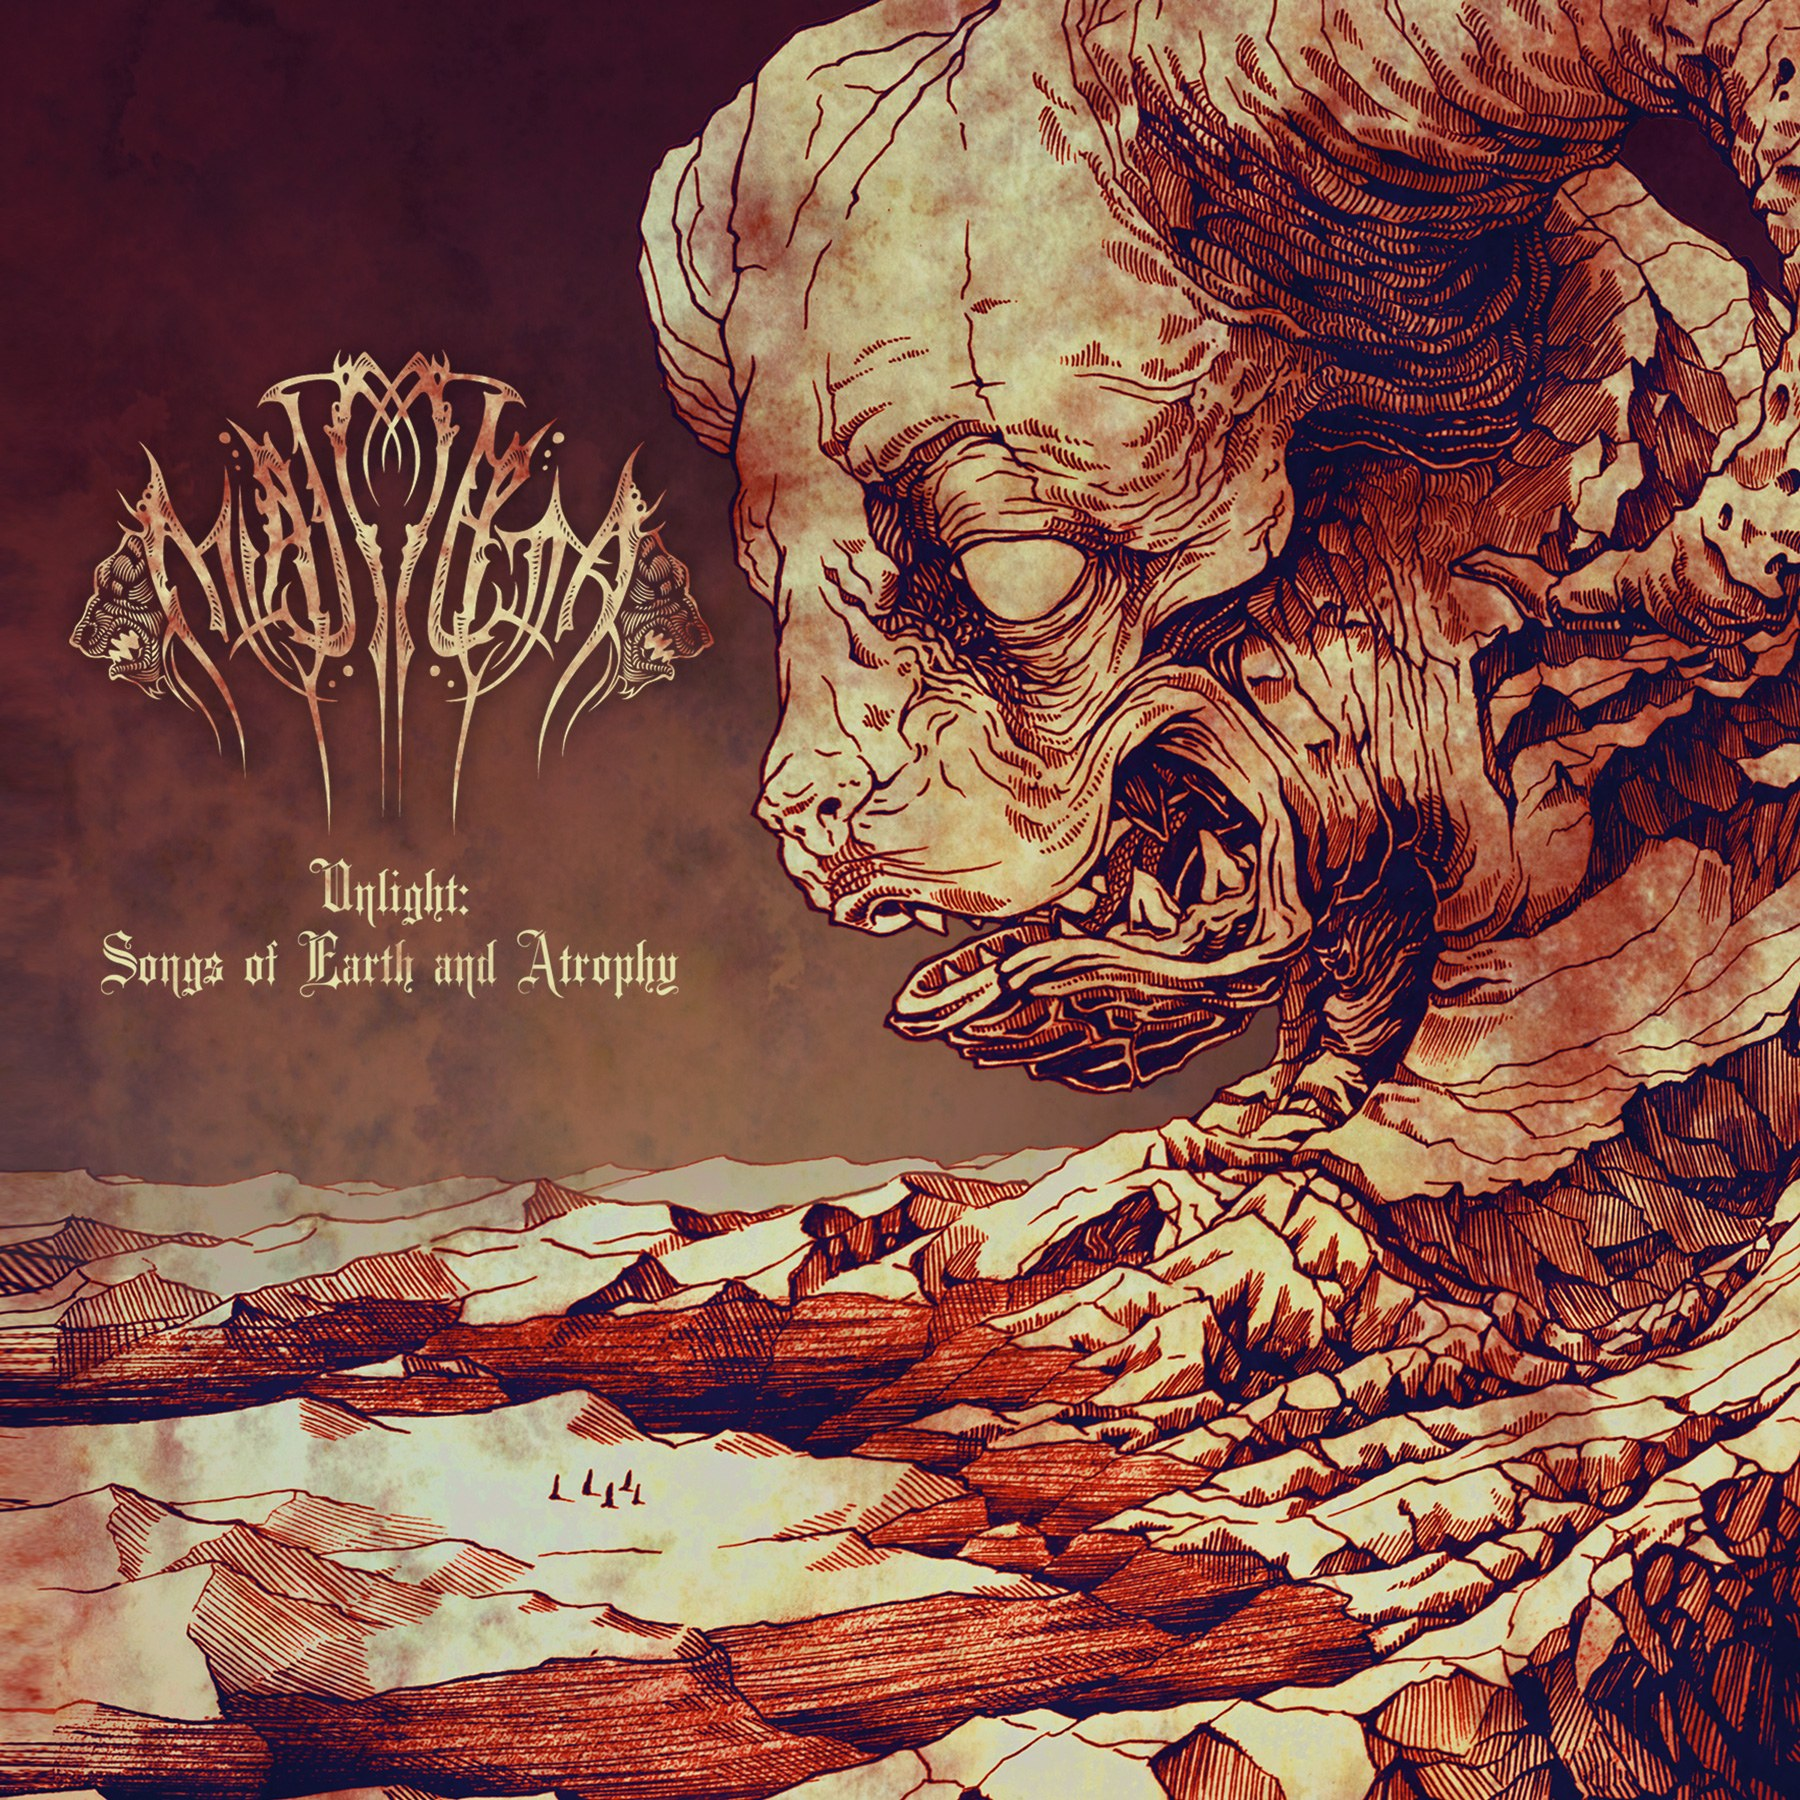 Miasmata - Unlight: Songs of Earth and Atrophy